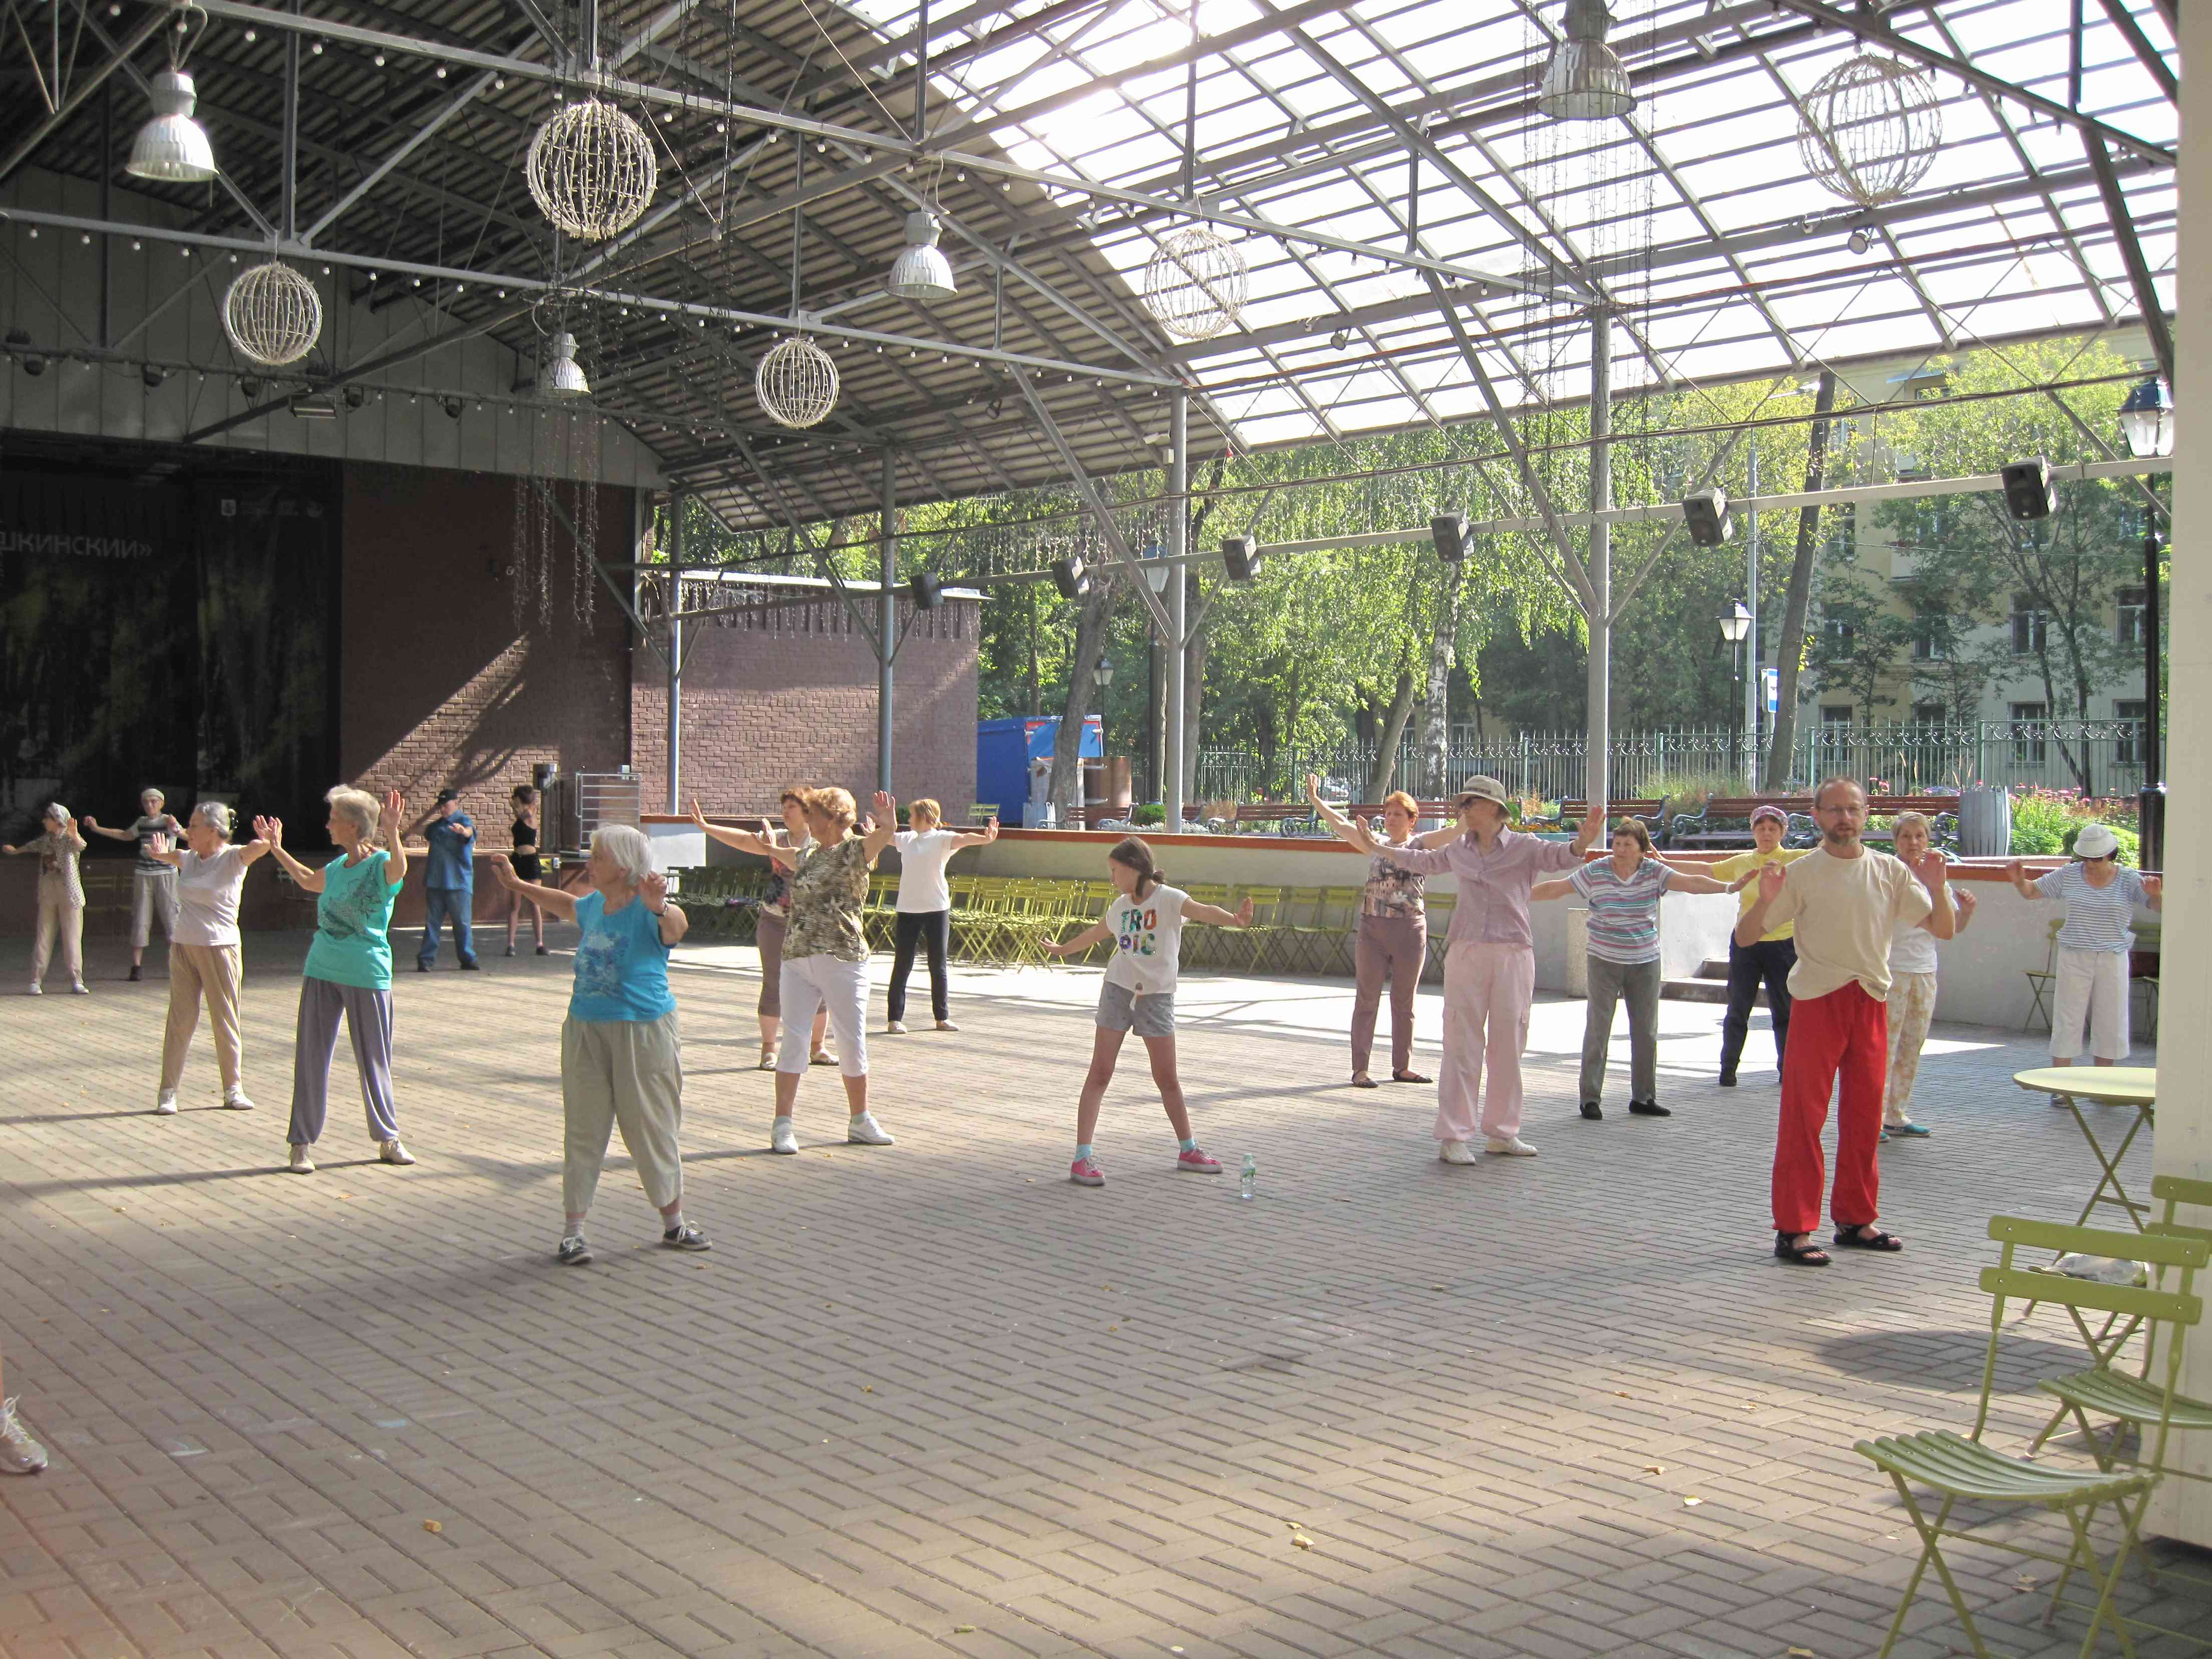 Babushkinsky Park of Culture and Rest in Moscow: photos, description, activities, leisure options, visitor reviews 69